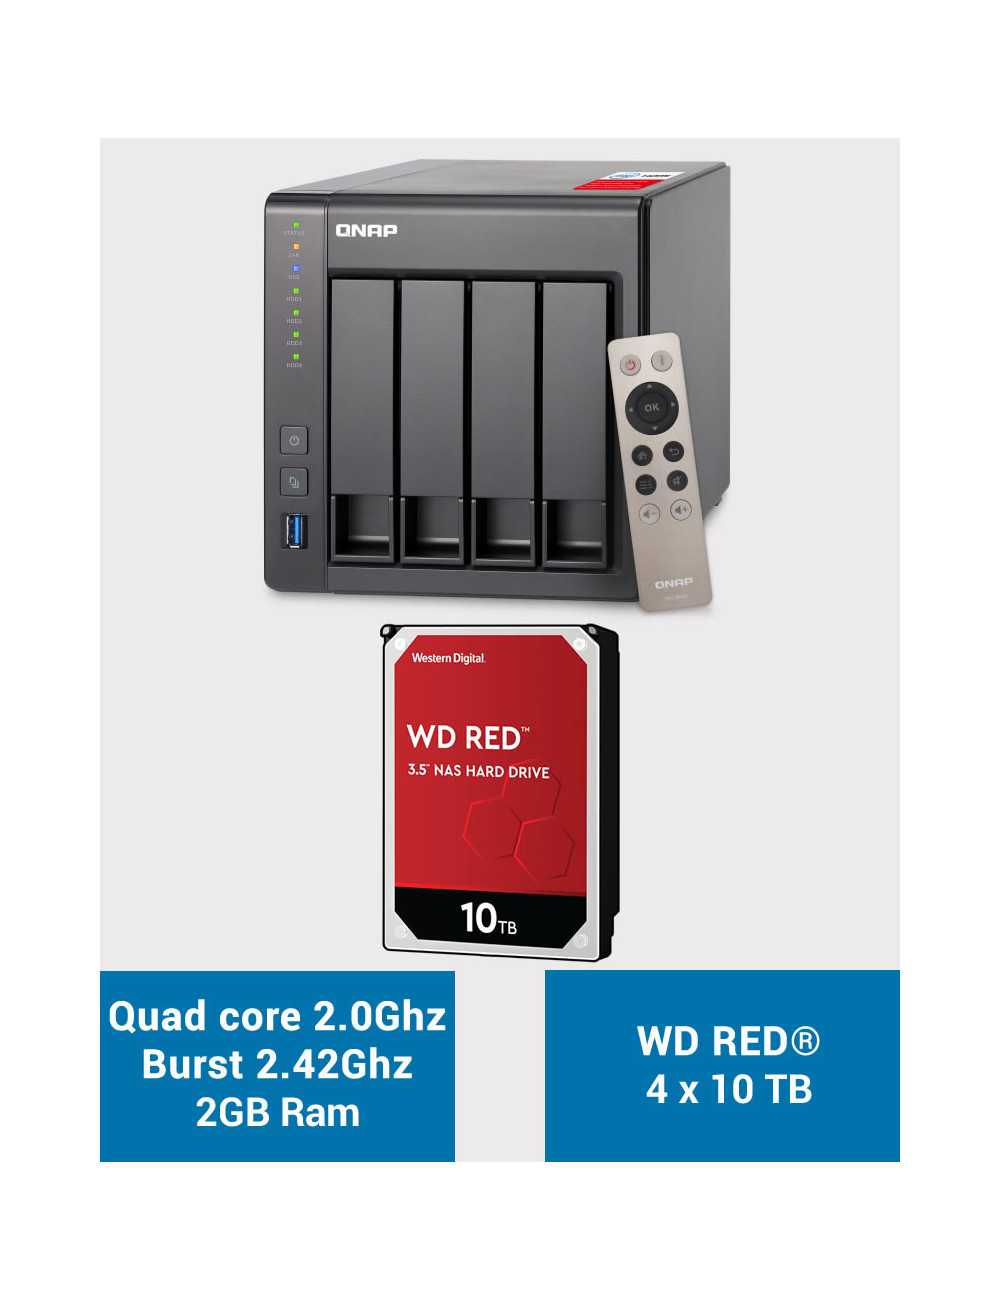 QNAP TS-451+ 2Go Serveur NAS WD RED 40To (4x10To)